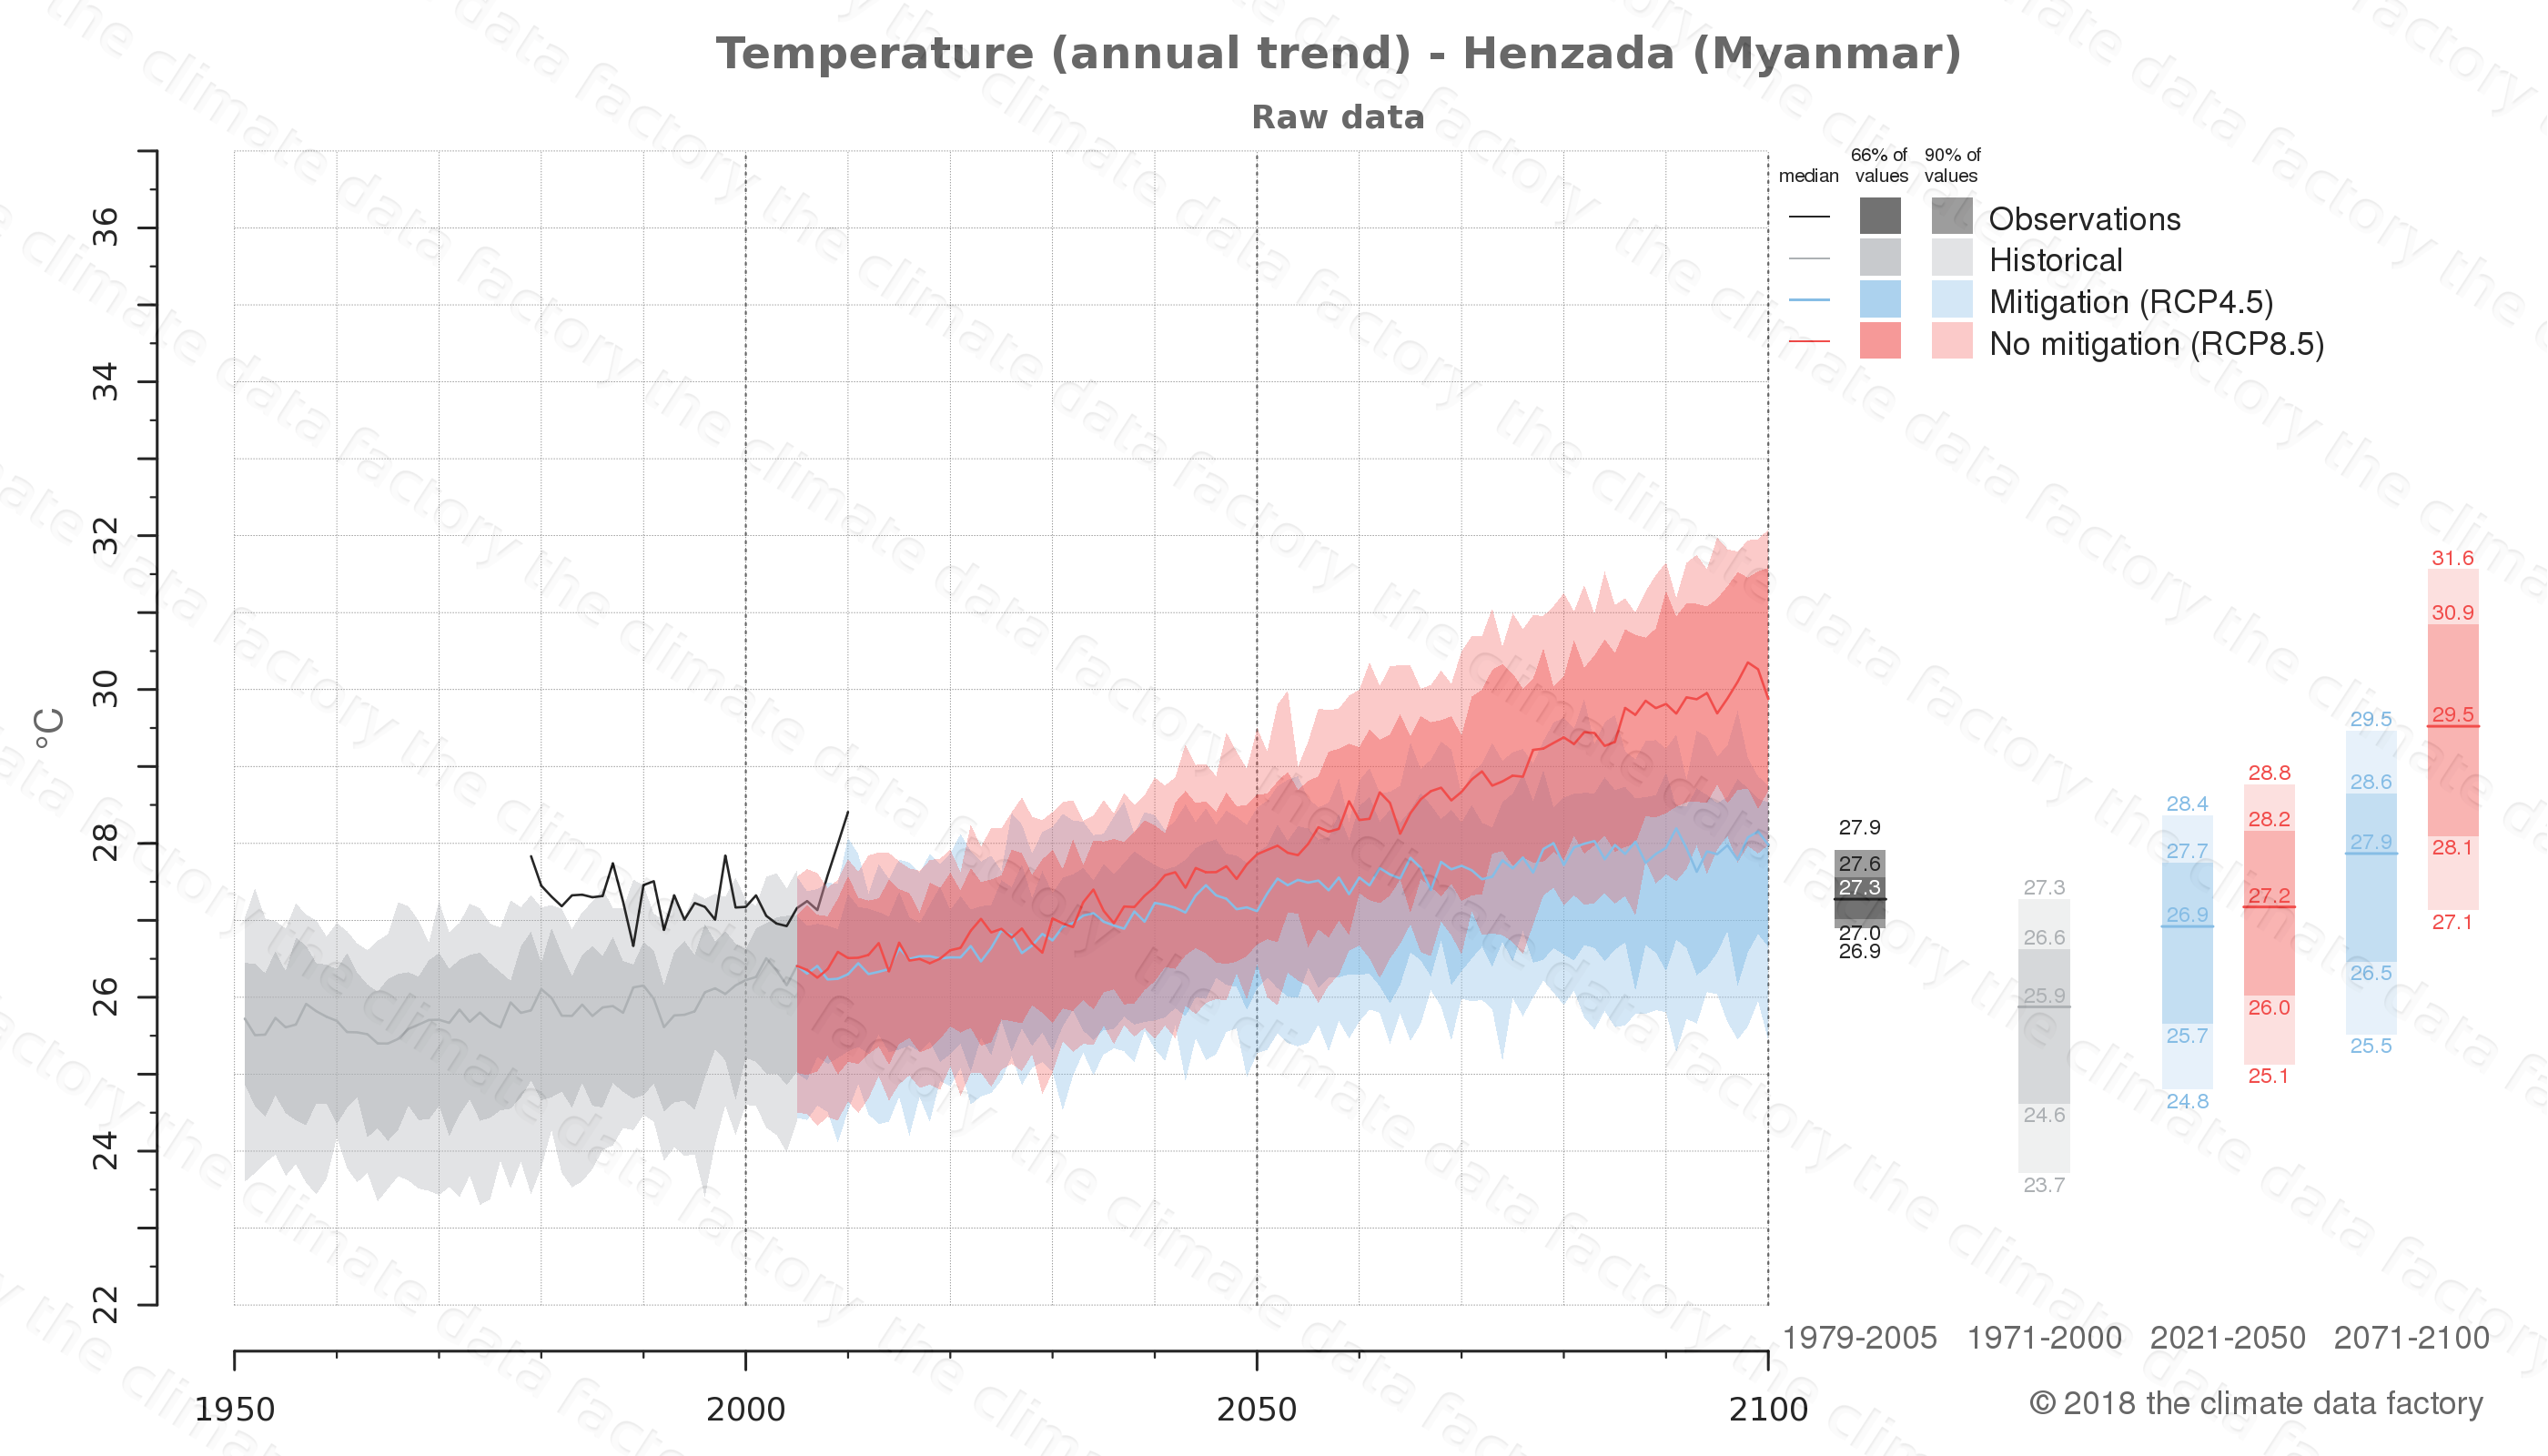 climate change data policy adaptation climate graph city data temperature henzada myanmar